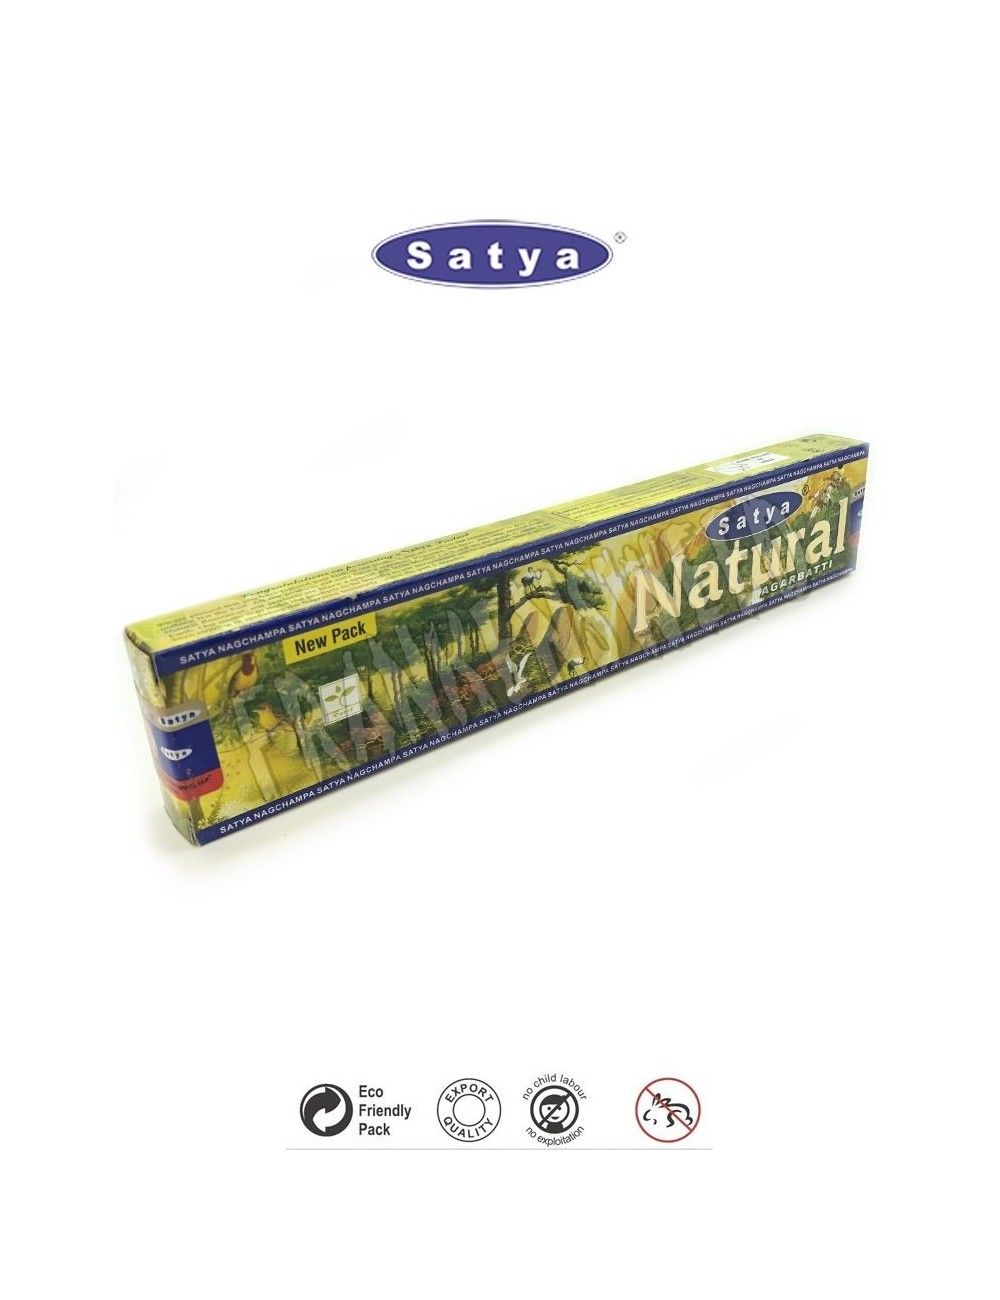 Natural - Satya Sai Baba - Incense Sticks